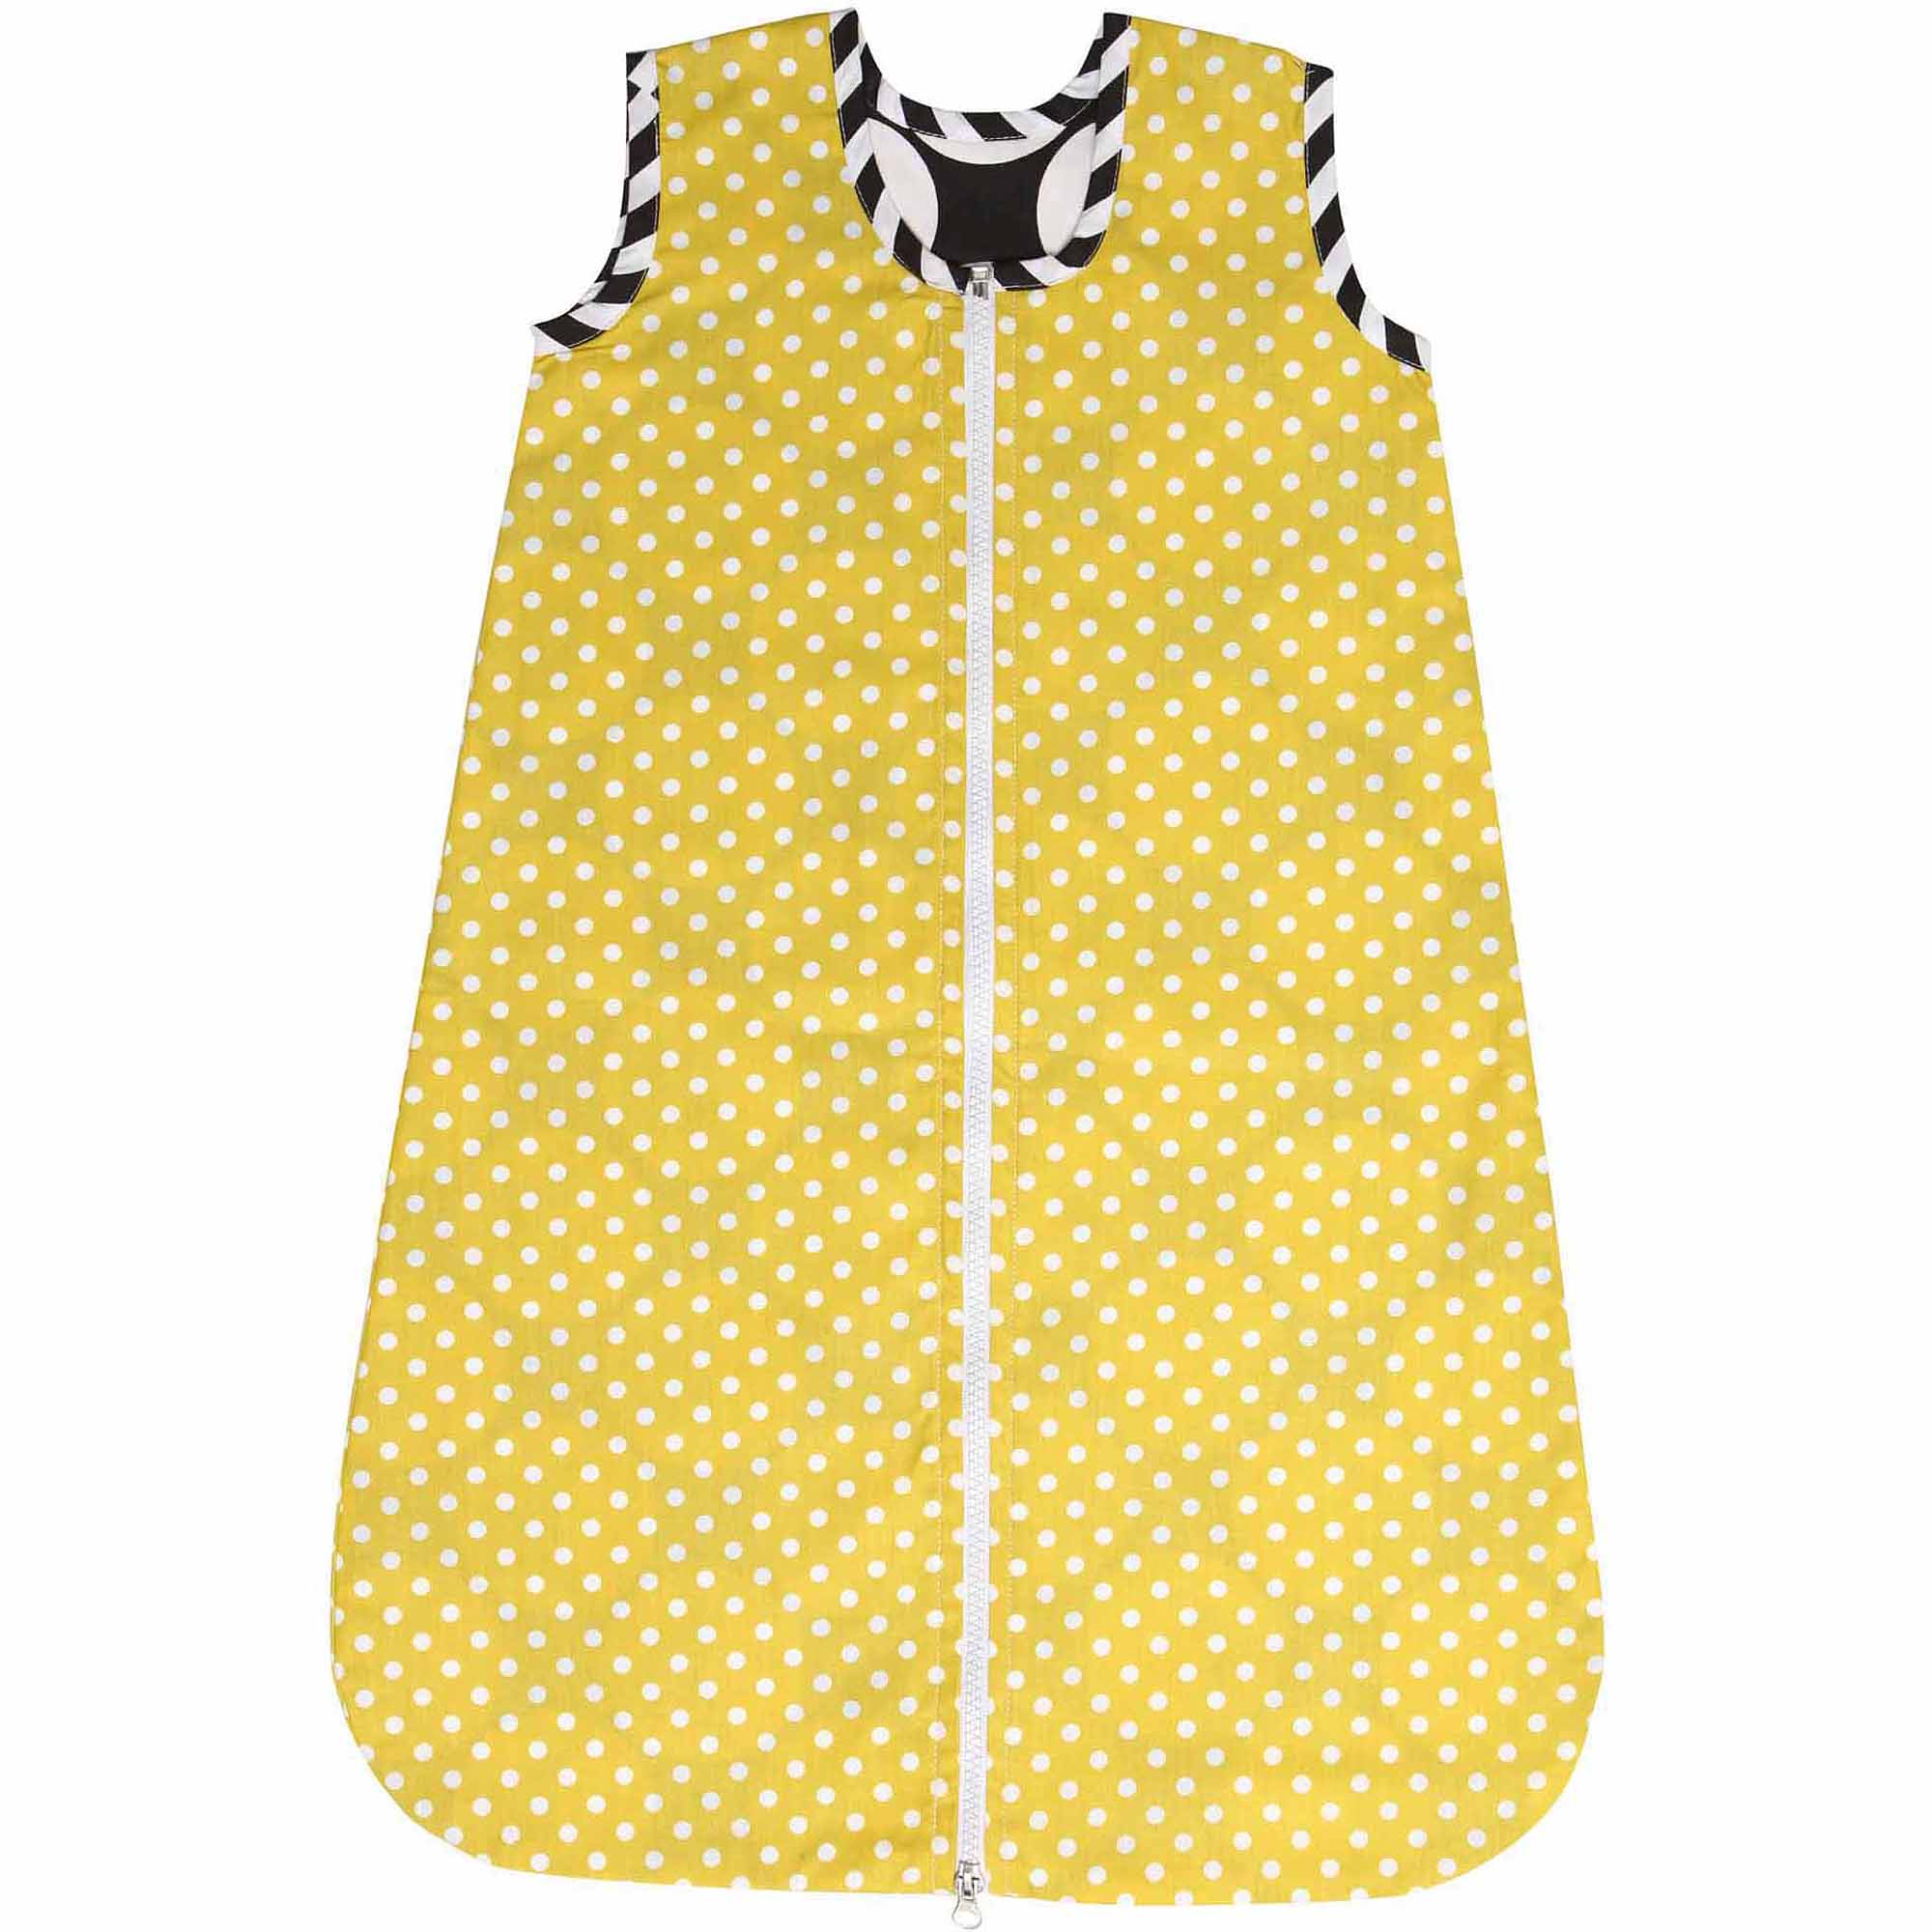 Bacati Dots/Pin Stripes Pin Bacati Dots Sleep Sack 2, Black/White with Yellow